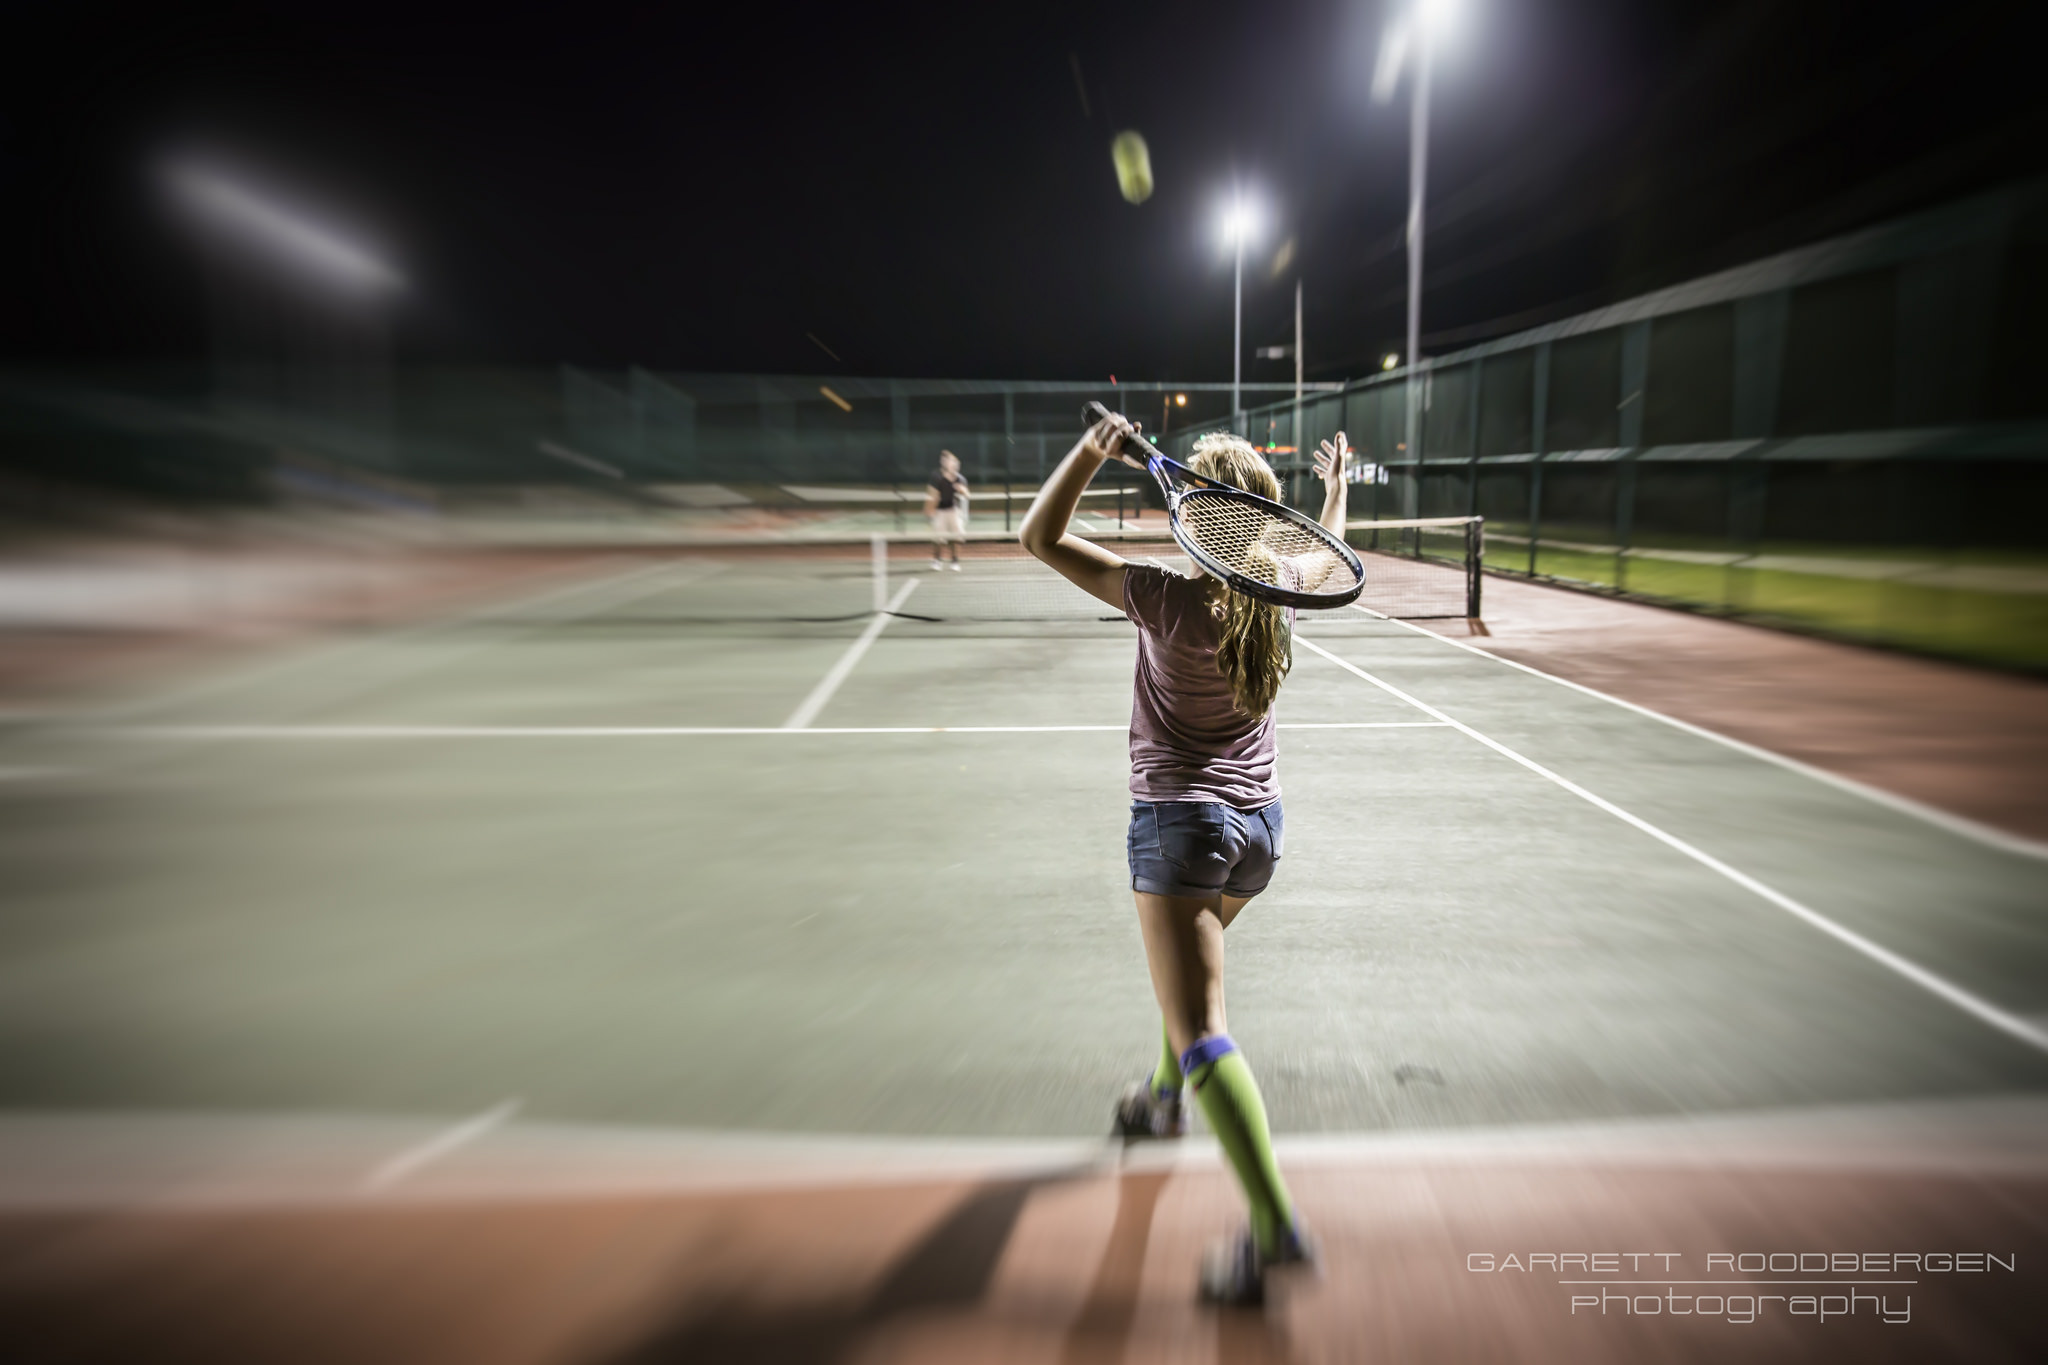 Serve Up #tennis #sport #play #canon #photography #move